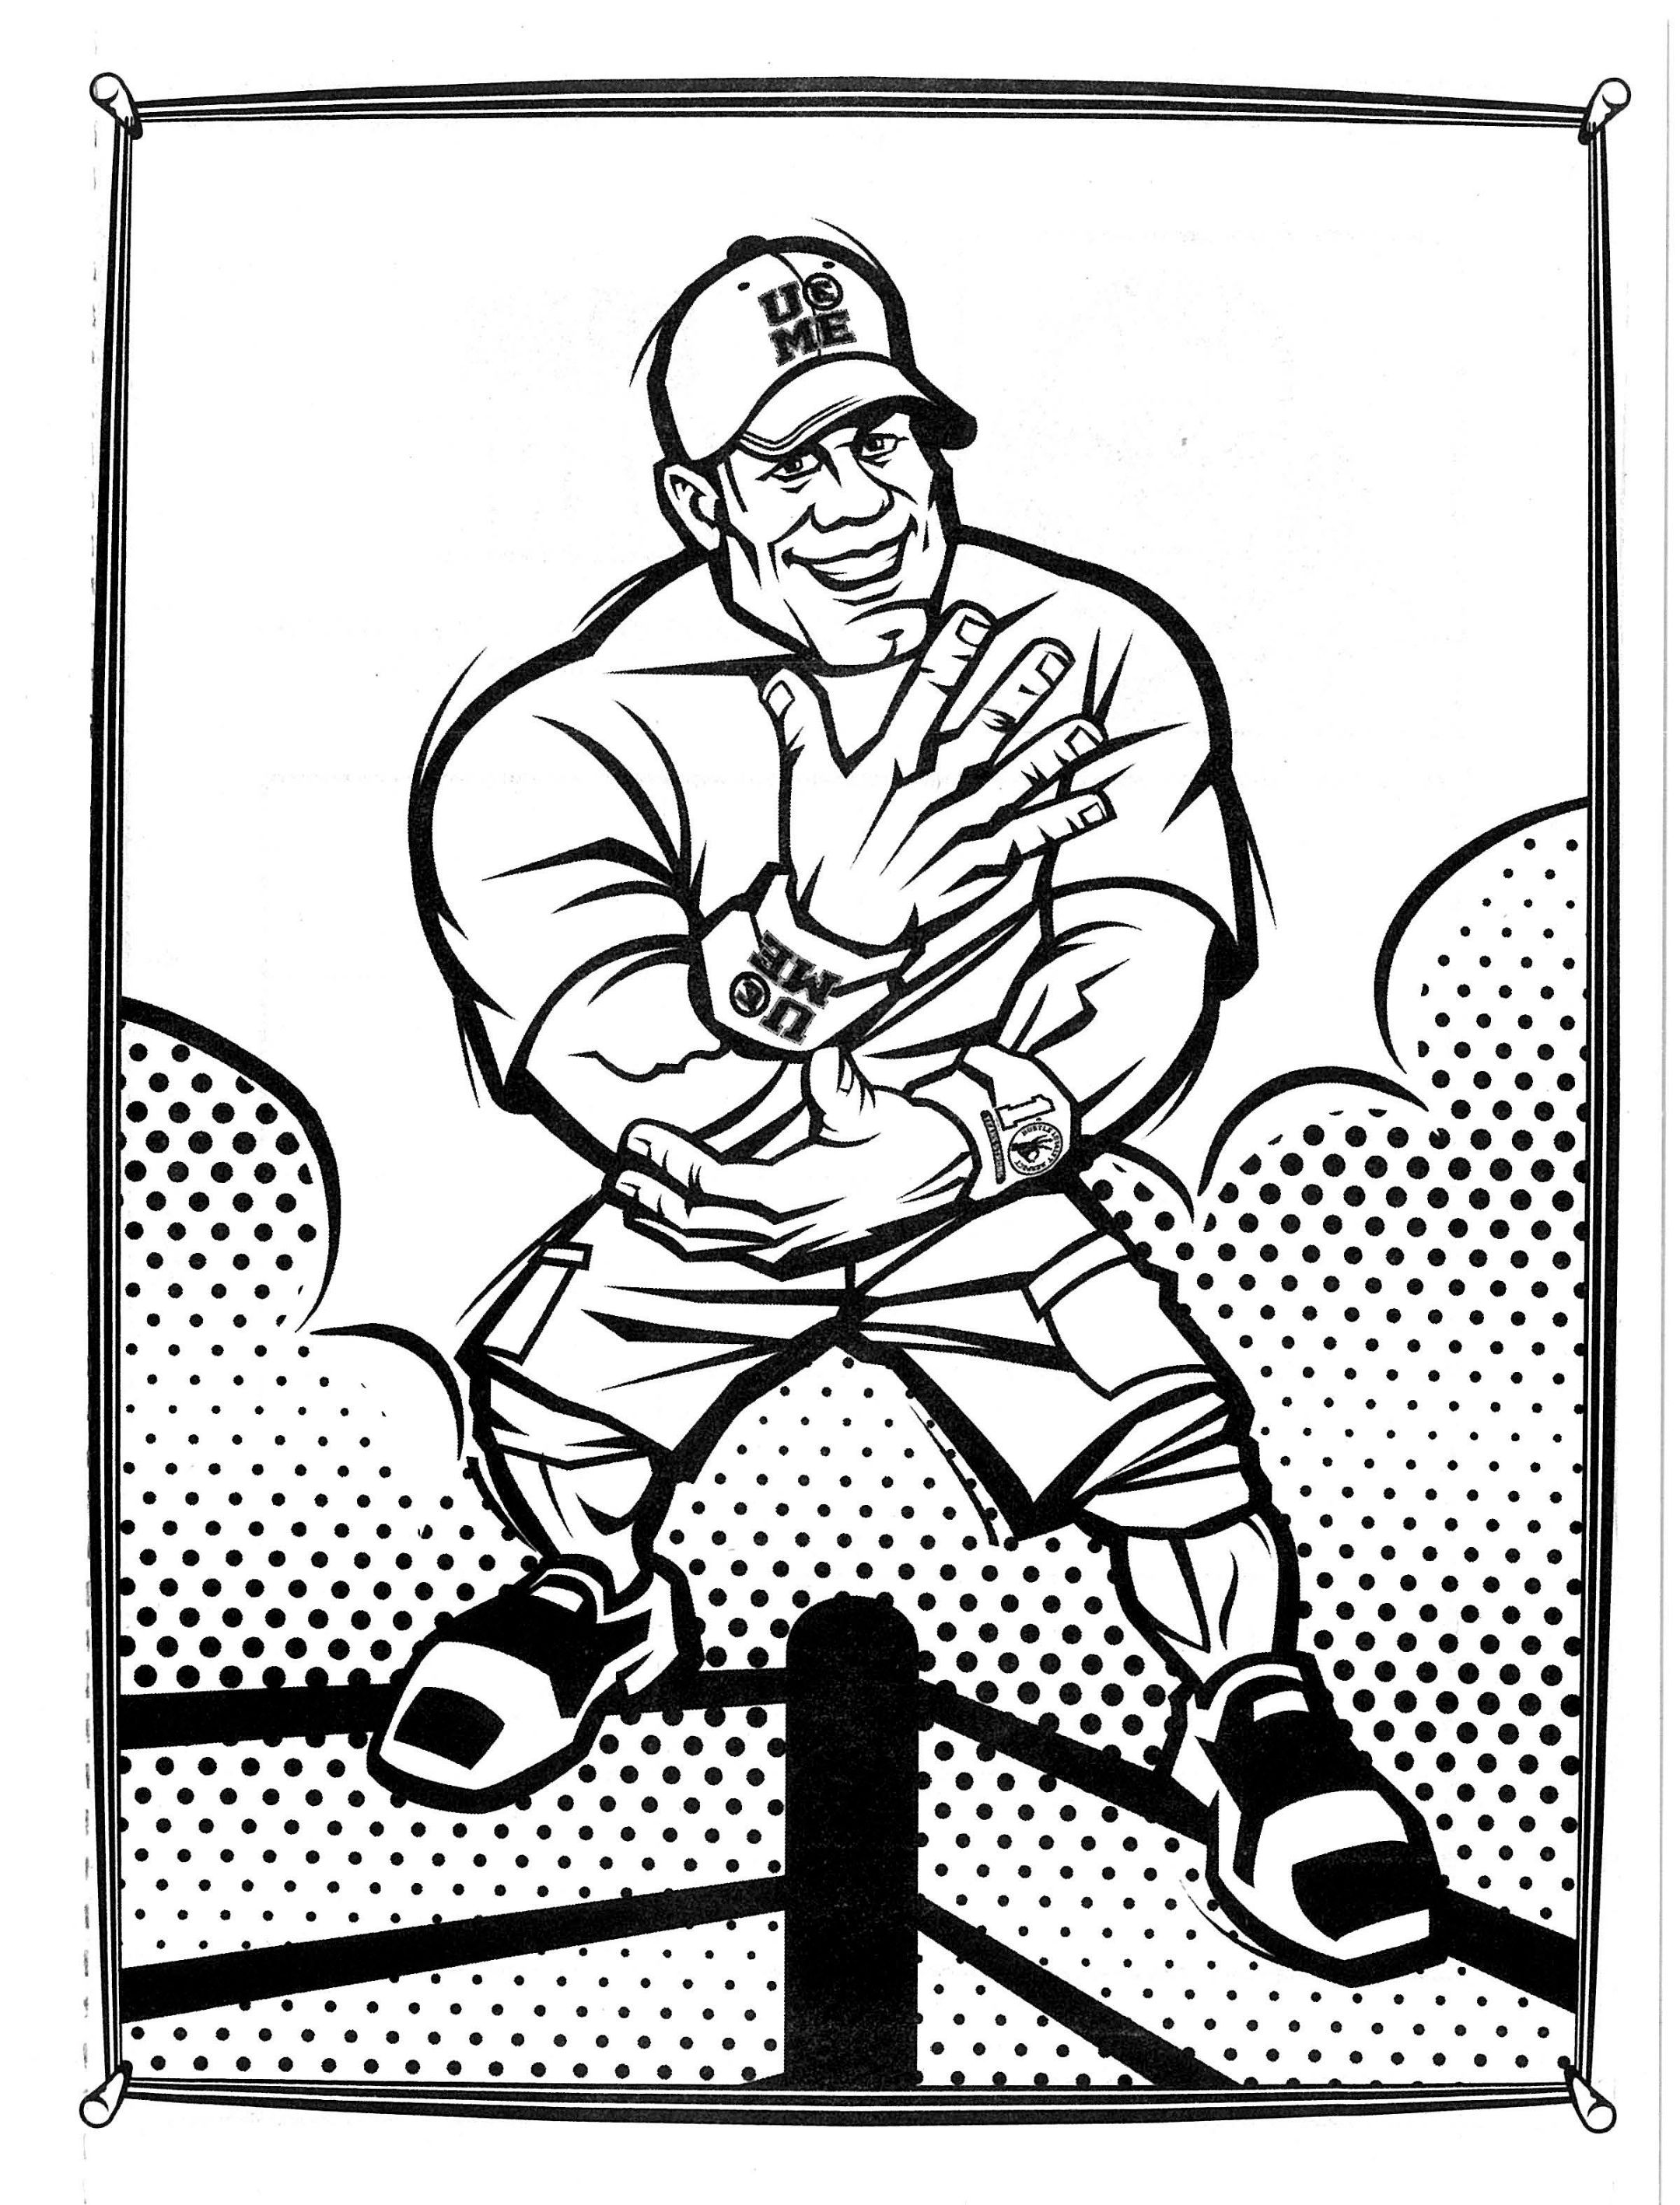 coloring pages wwe free printable wwe coloring pages for kids wwe coloring pages wwe coloring